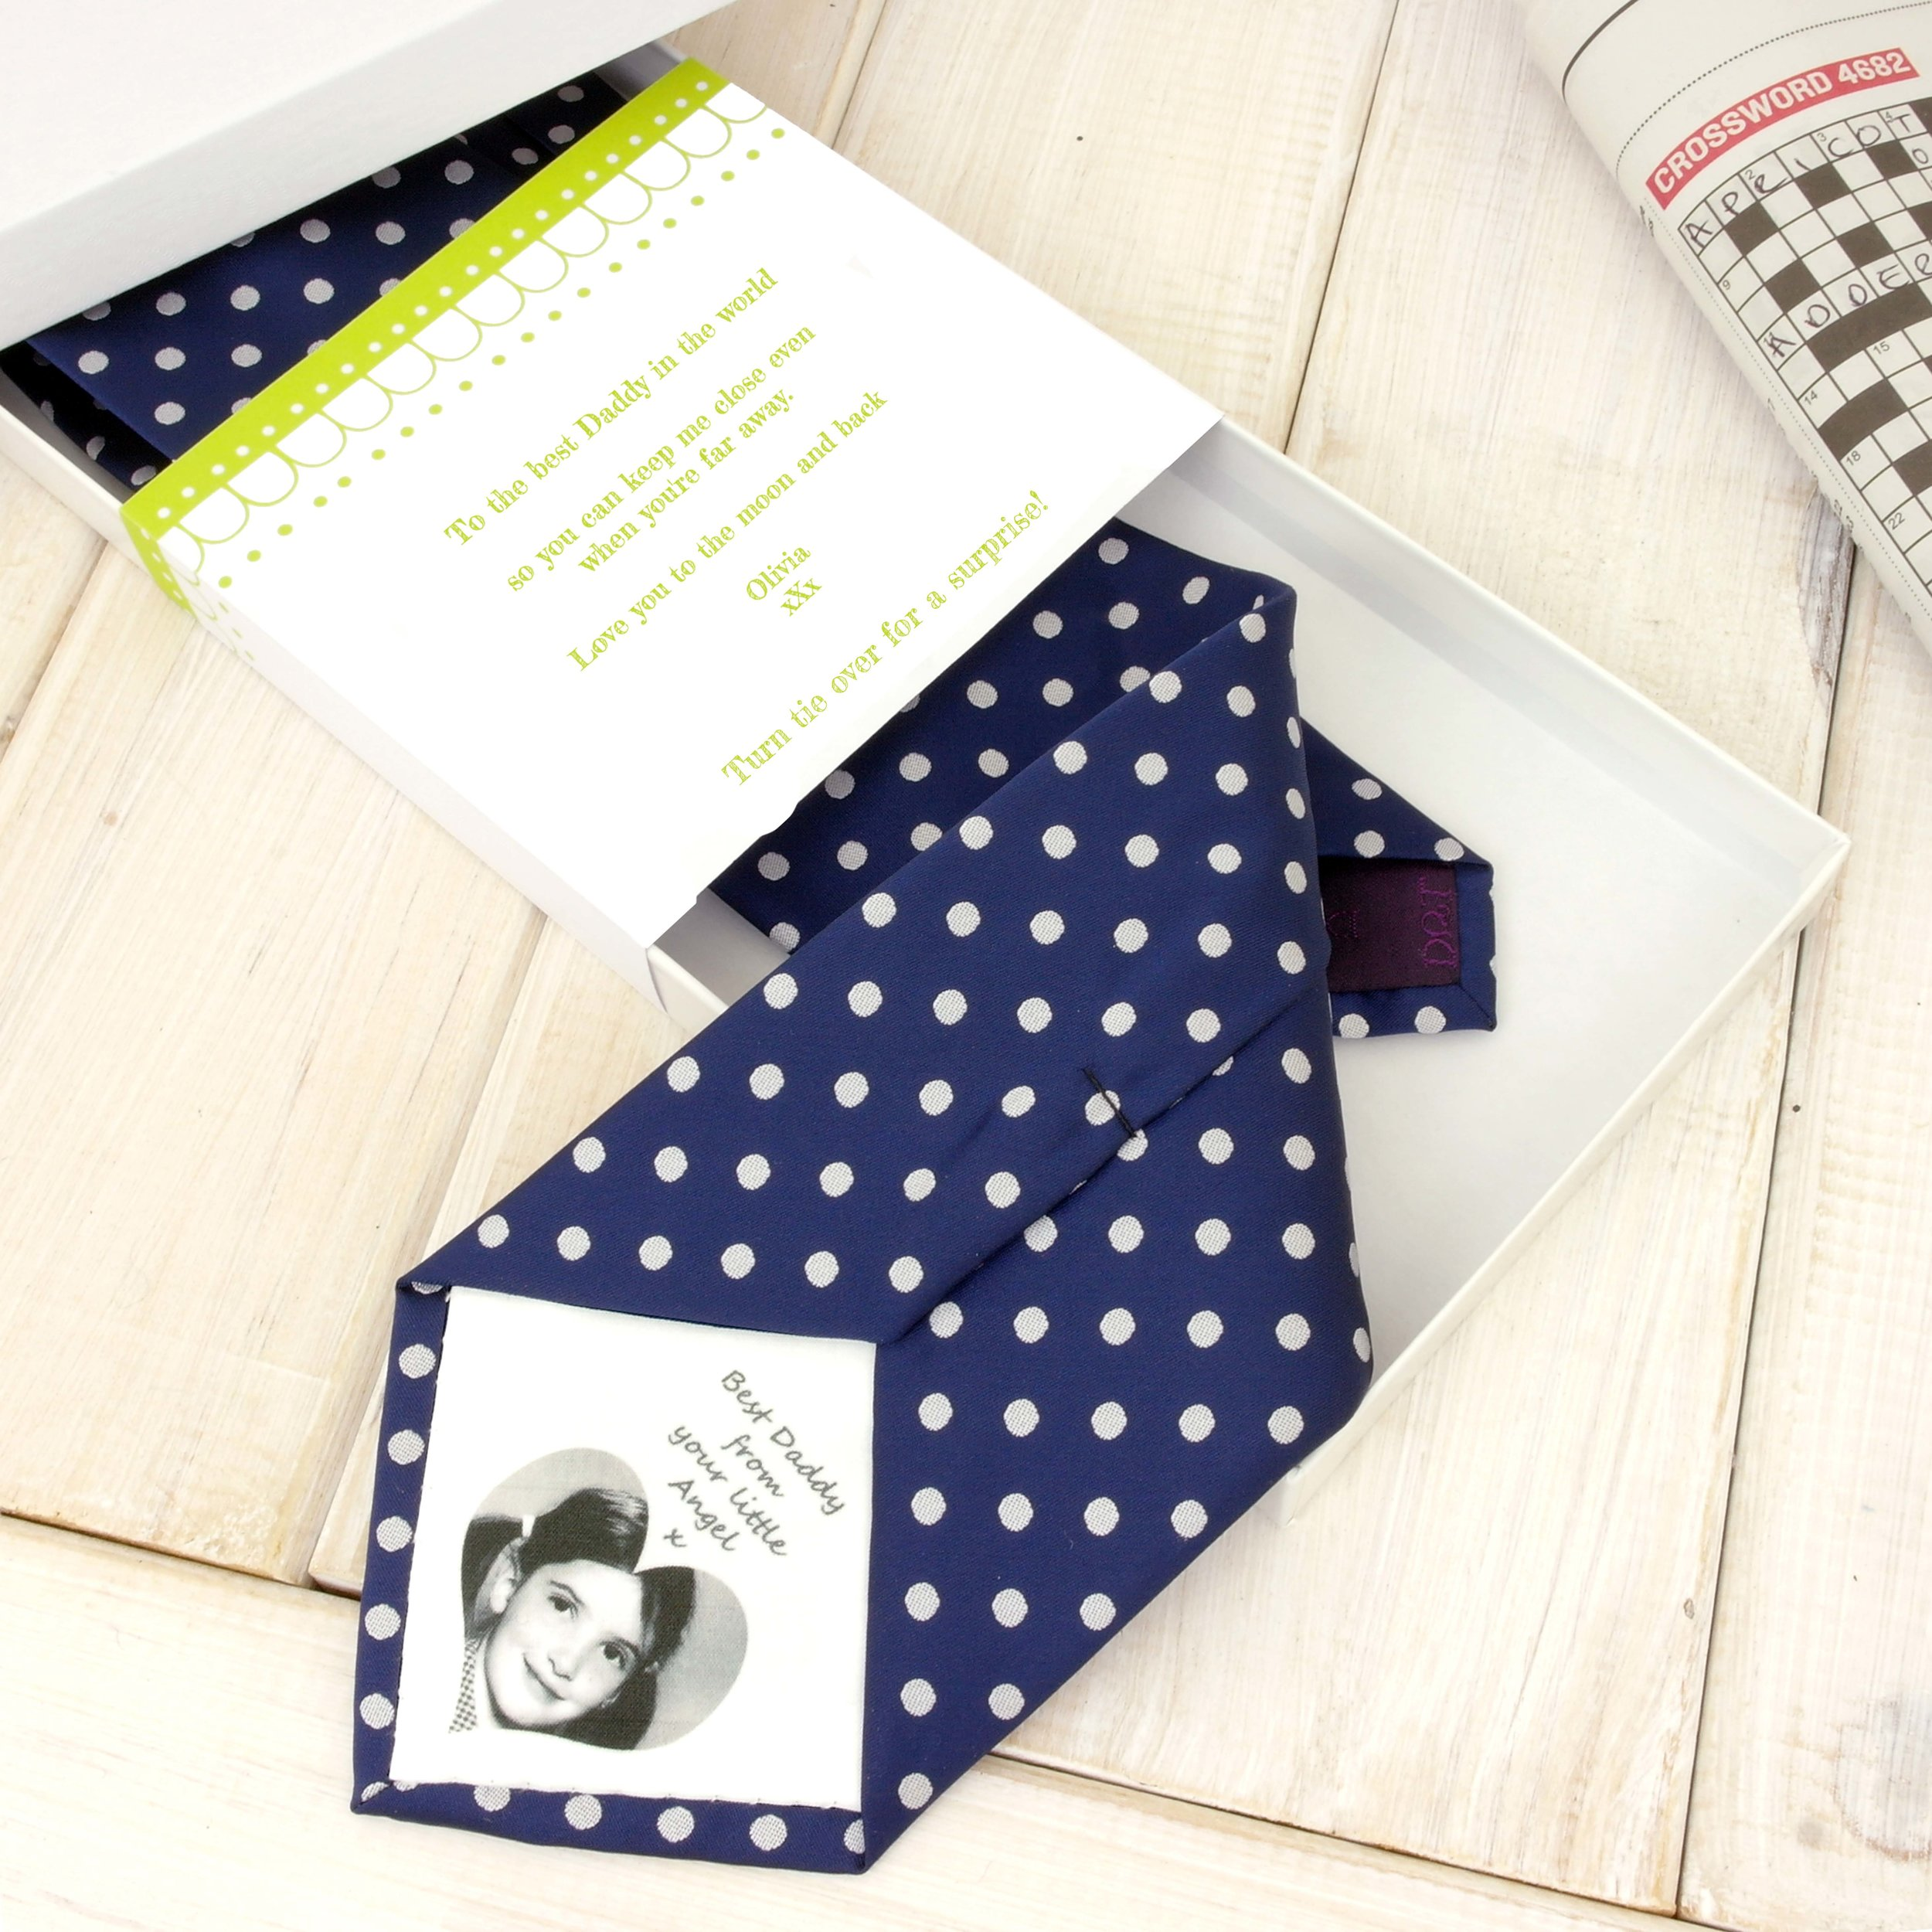 Tie and Gift Box.jpg